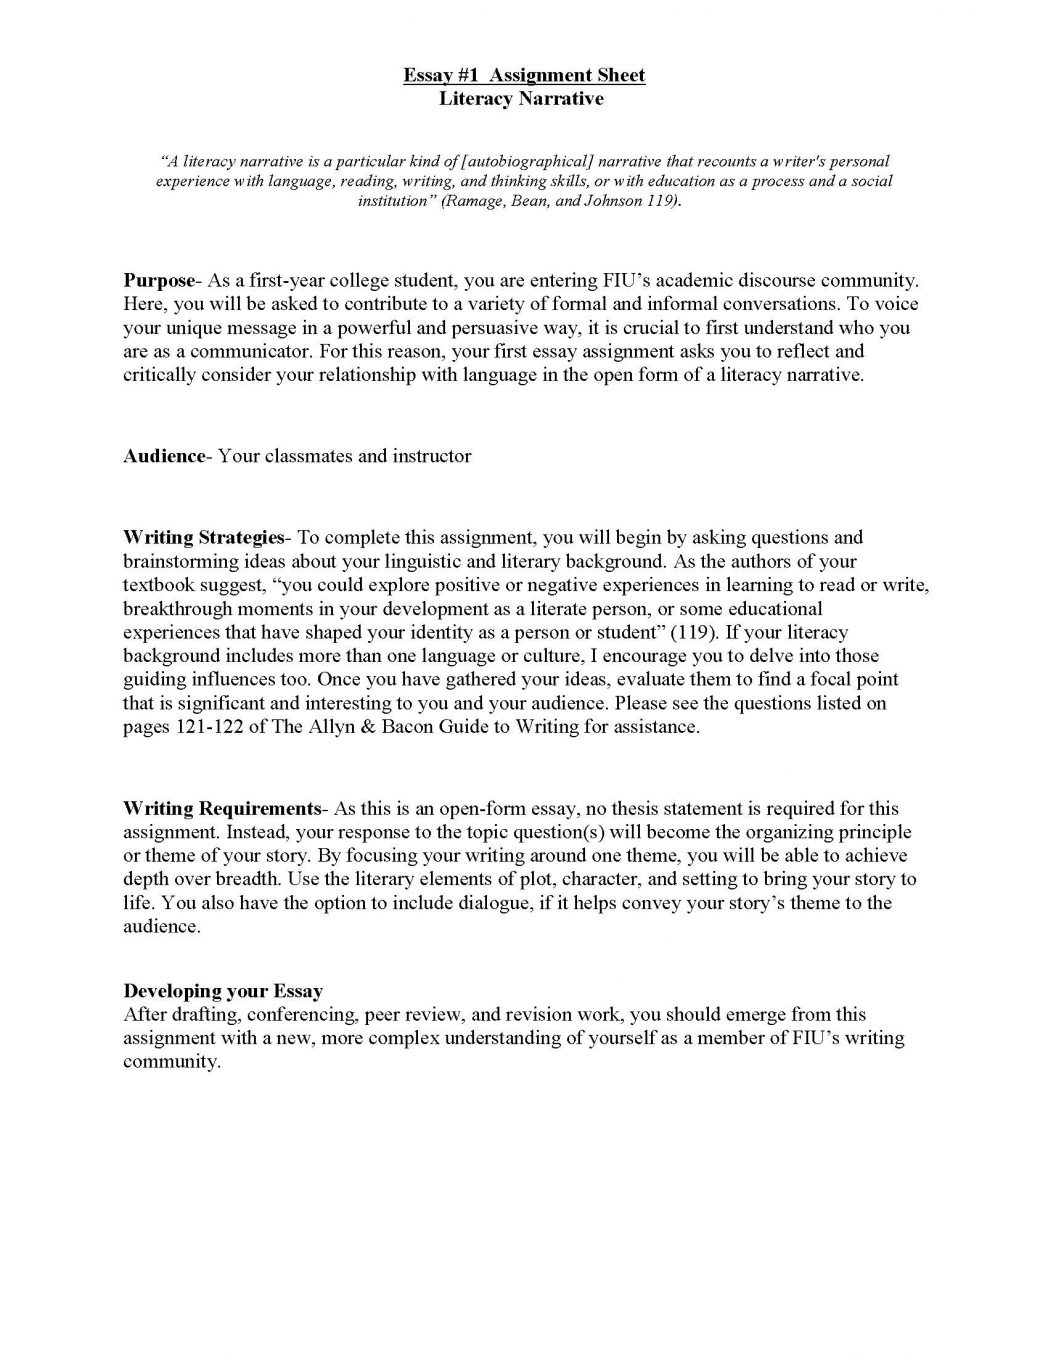 015 Short Narrative Essay Samples For High Schools Literacy Unit Assignment Spring 2012 P Personal Pdf 1048x1356 Fantastic About Life Topics Full